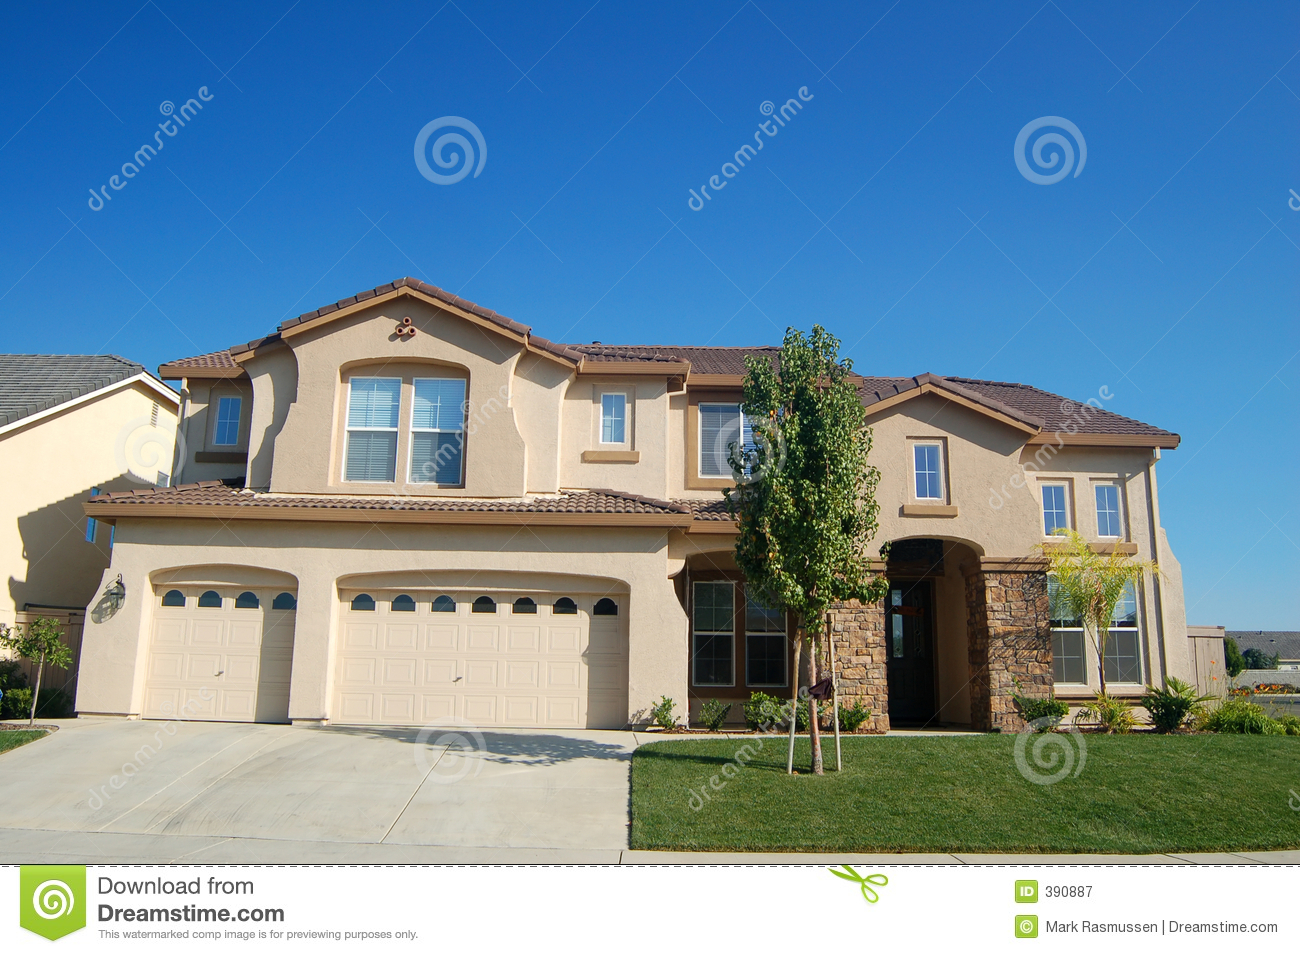 Royalty Free Stock Photo  Download Upscale House In California. Upscale House In California Royalty Free Stock Photography   Image